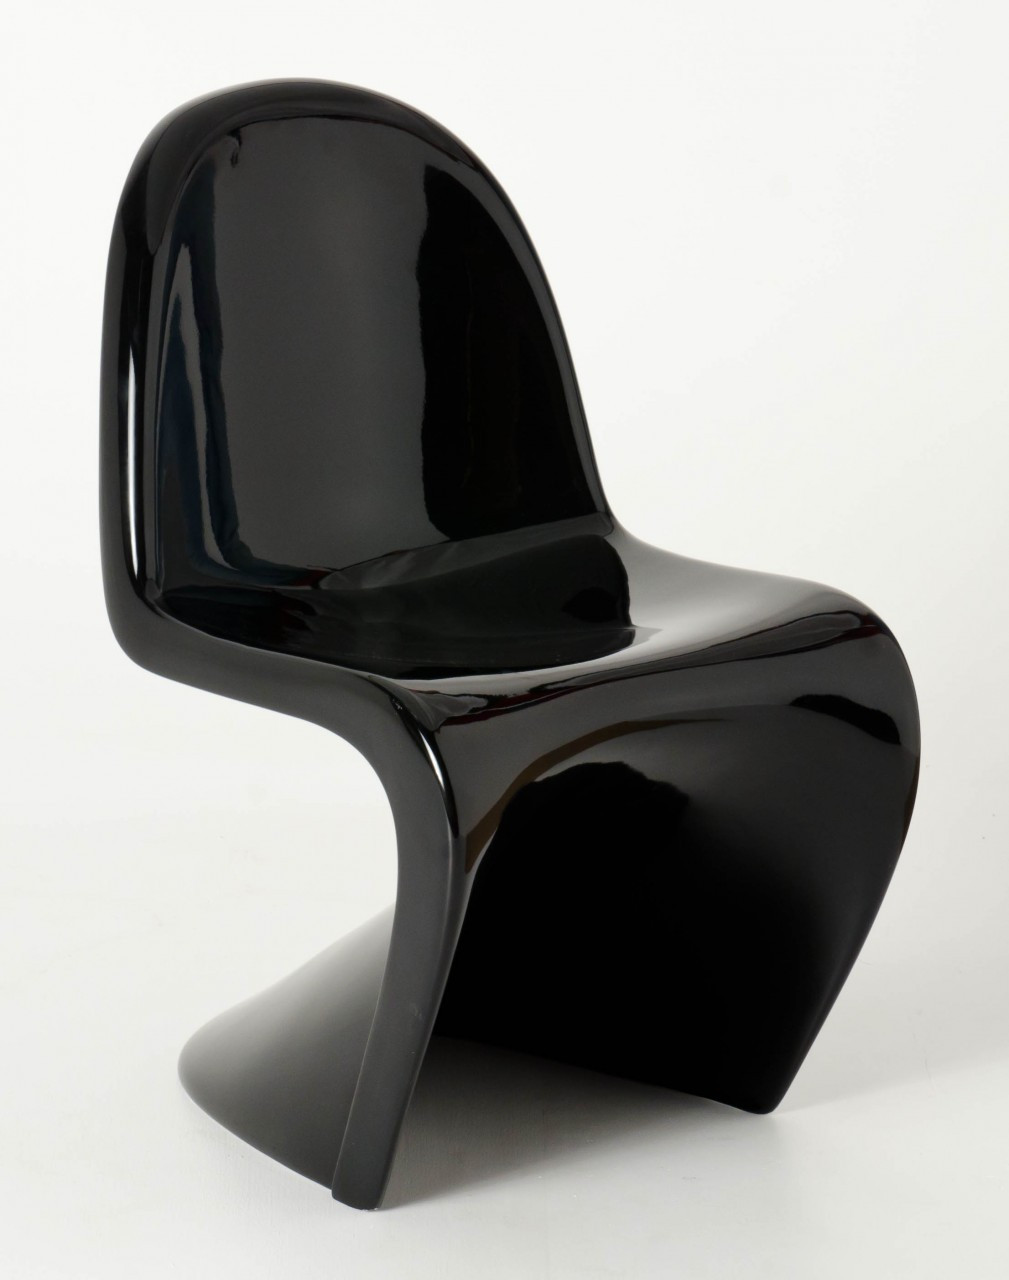 Replica Panton Chair - for Kids